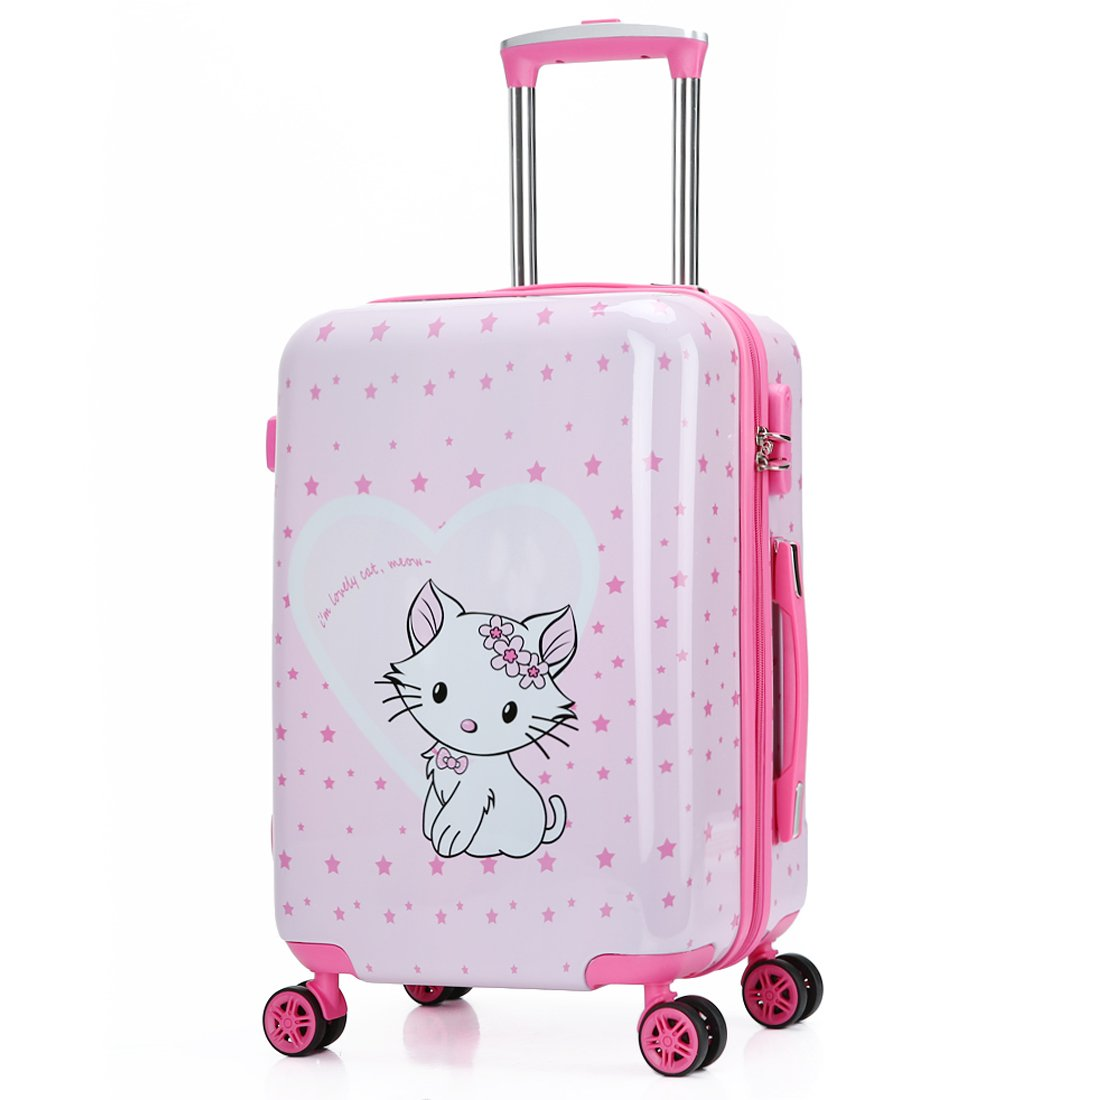 Kids Luggage Carry On Luggage With Spinner Wheels Toddlers Teenage Children Boys And Girls Travel Trolley Case (20inch, Pink love cat)